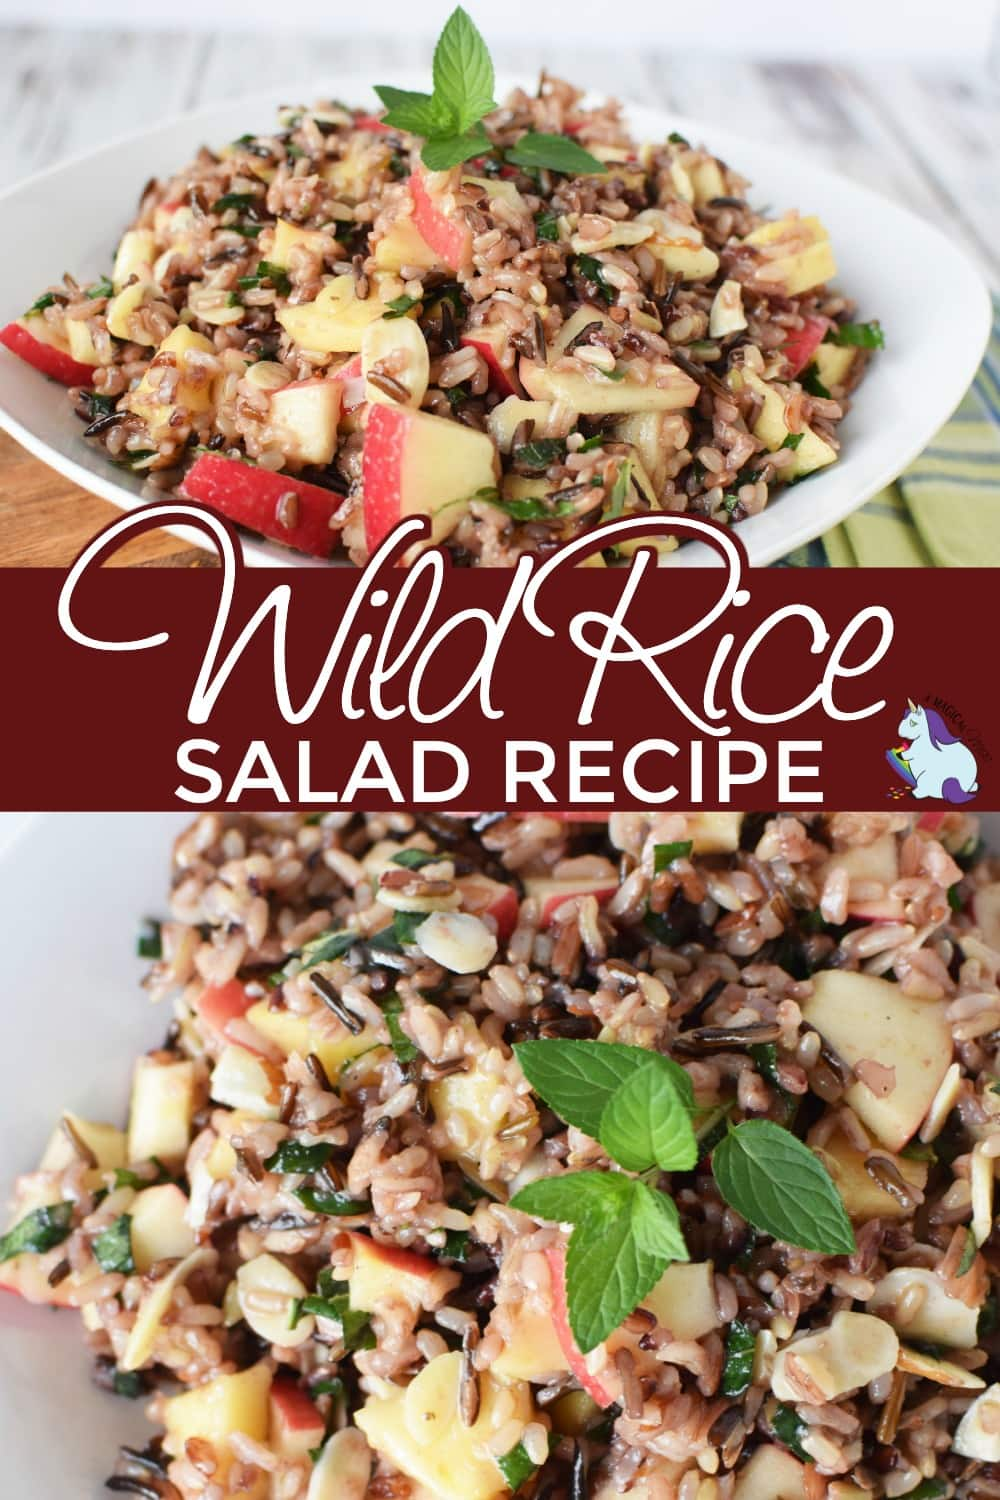 Wild rice salad in a bowl